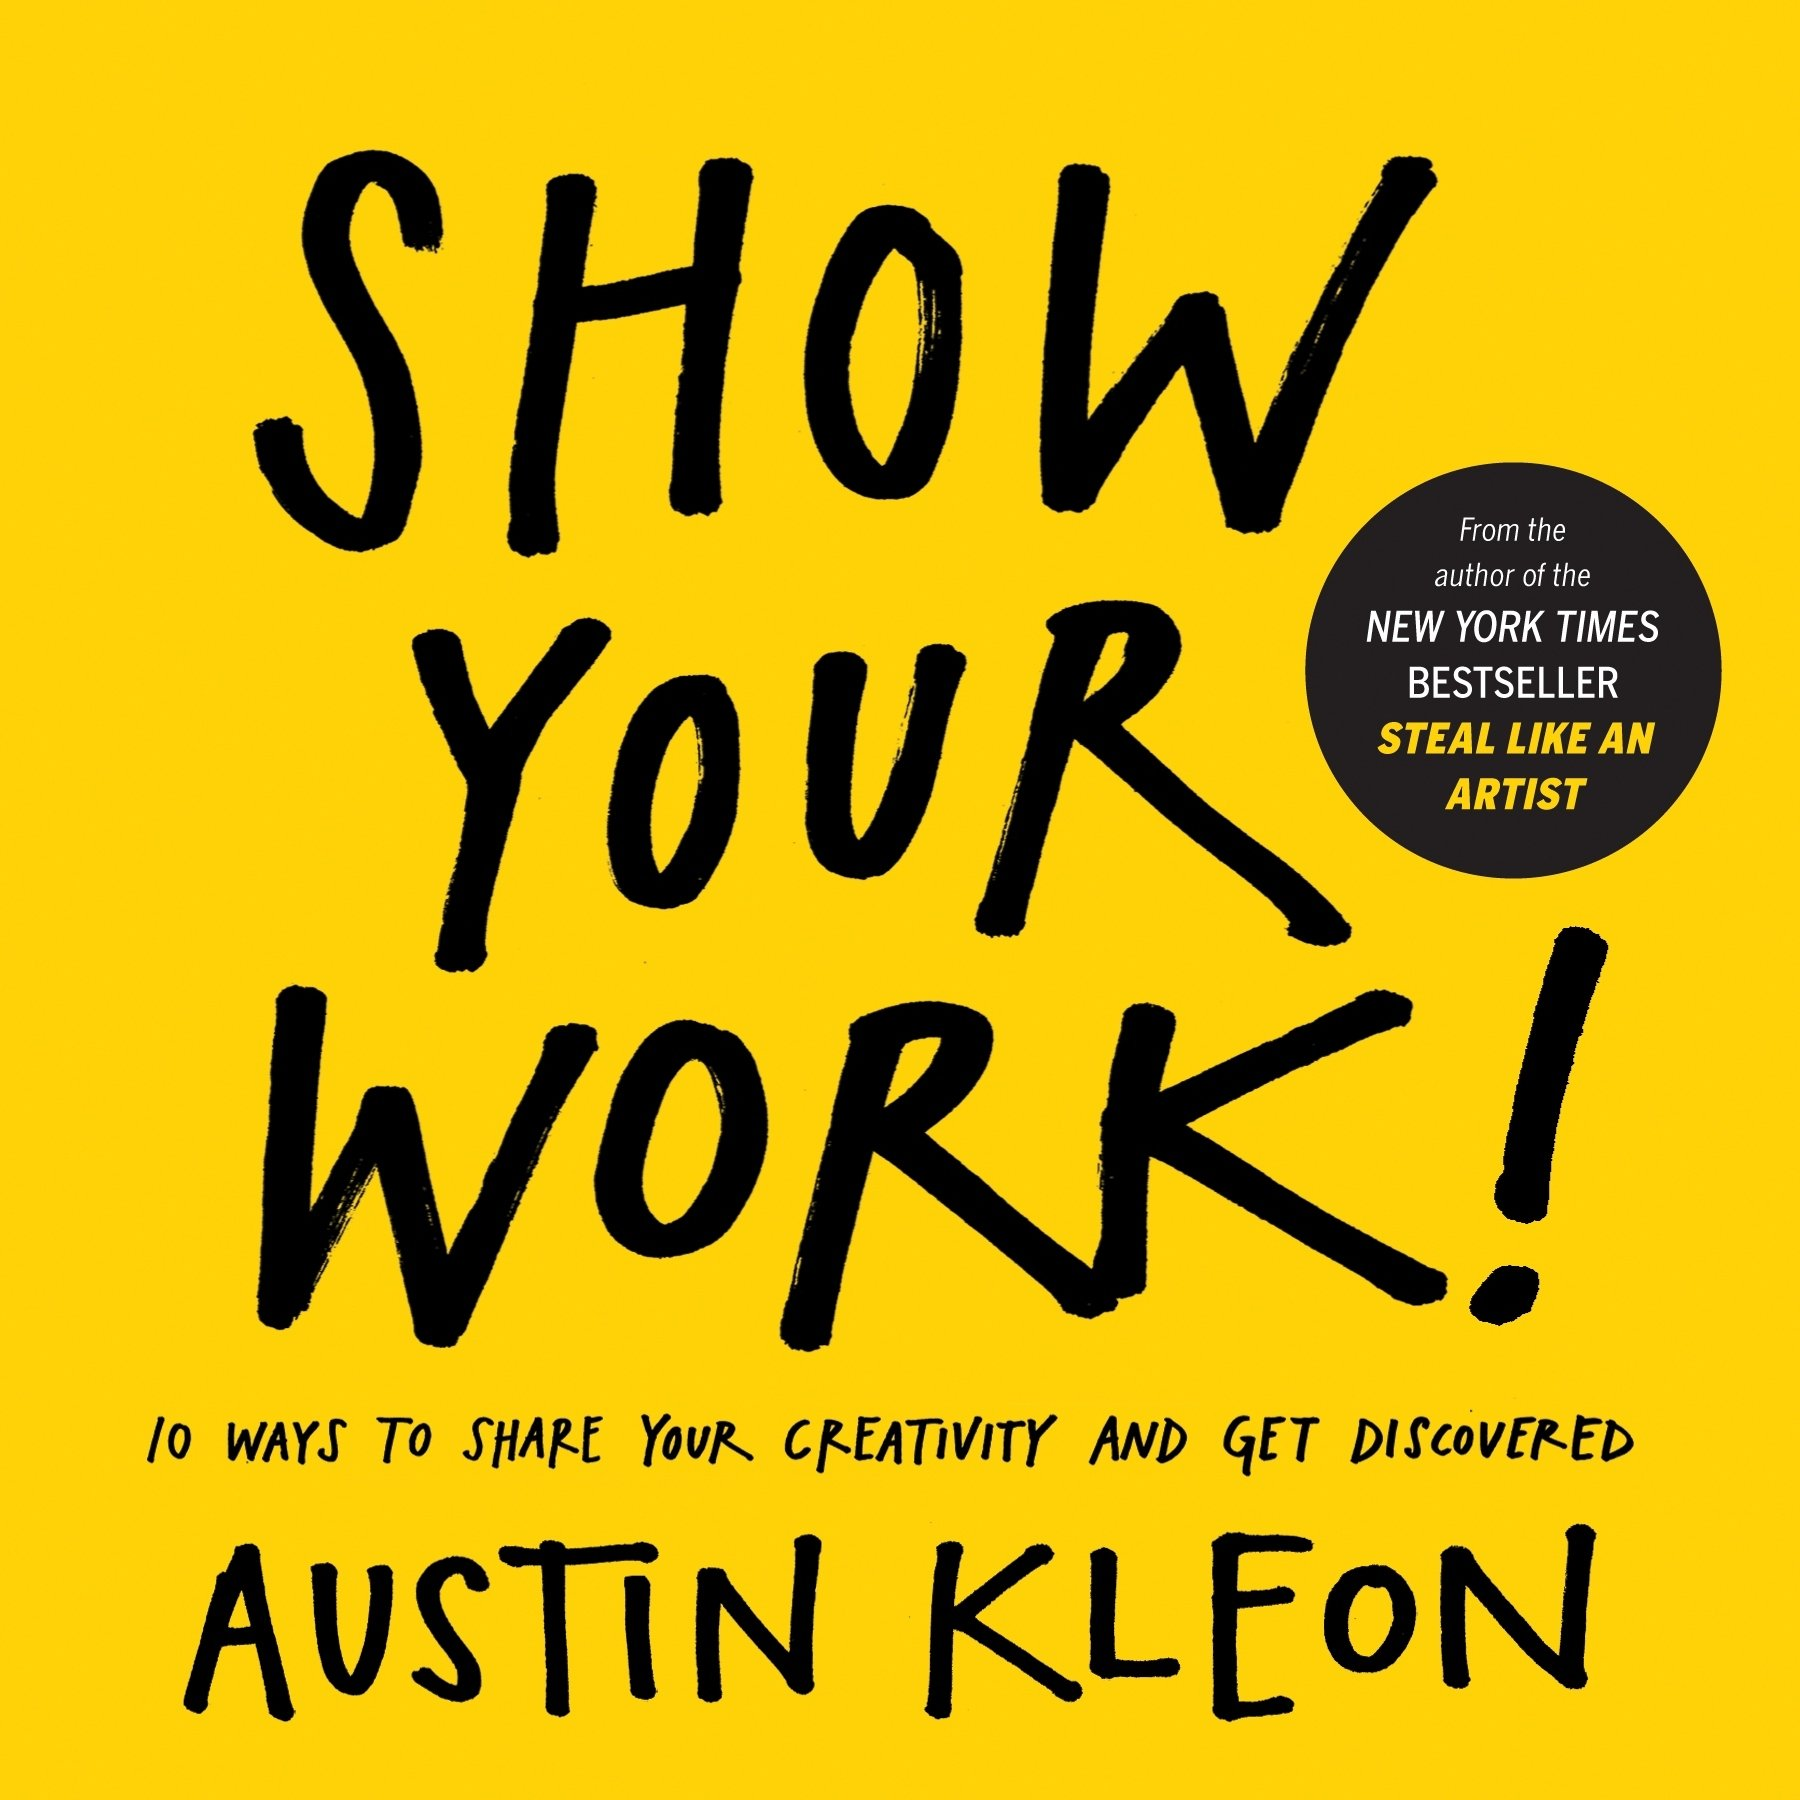 Show Your Work!: 10 Ways to Share Your Creativity and Get Discovered ISBN-13 9780761178972